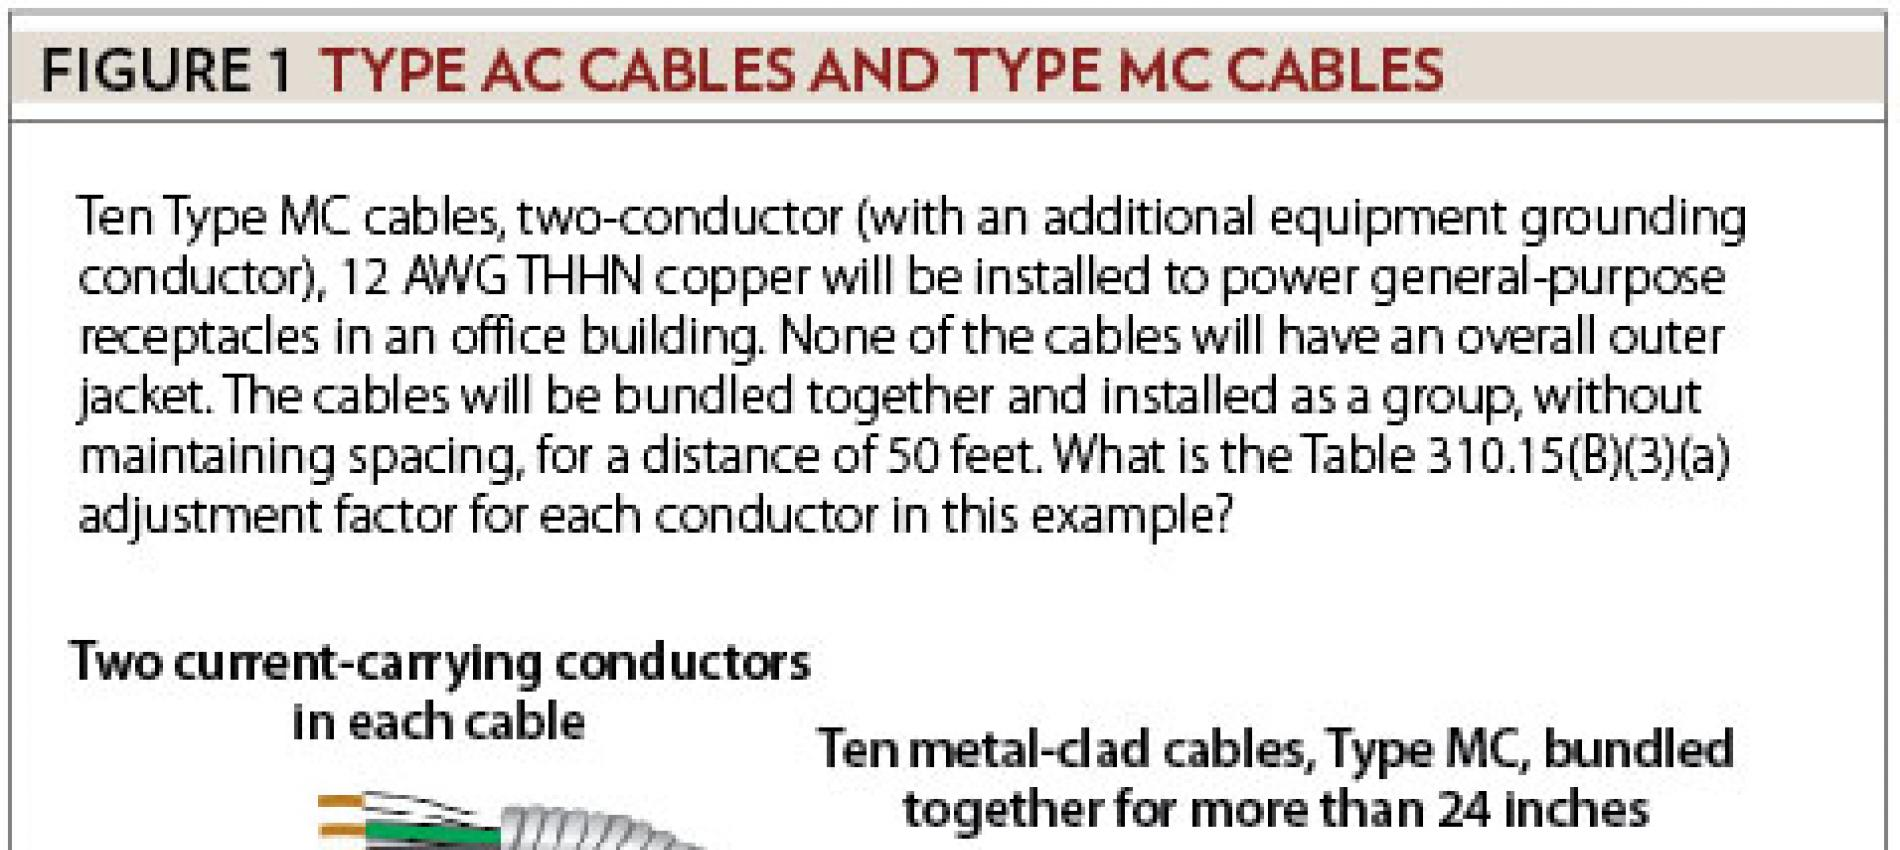 Surprising Sizing Conductors Part Xiv Electrical Contractor Magazine Wiring Digital Resources Funapmognl